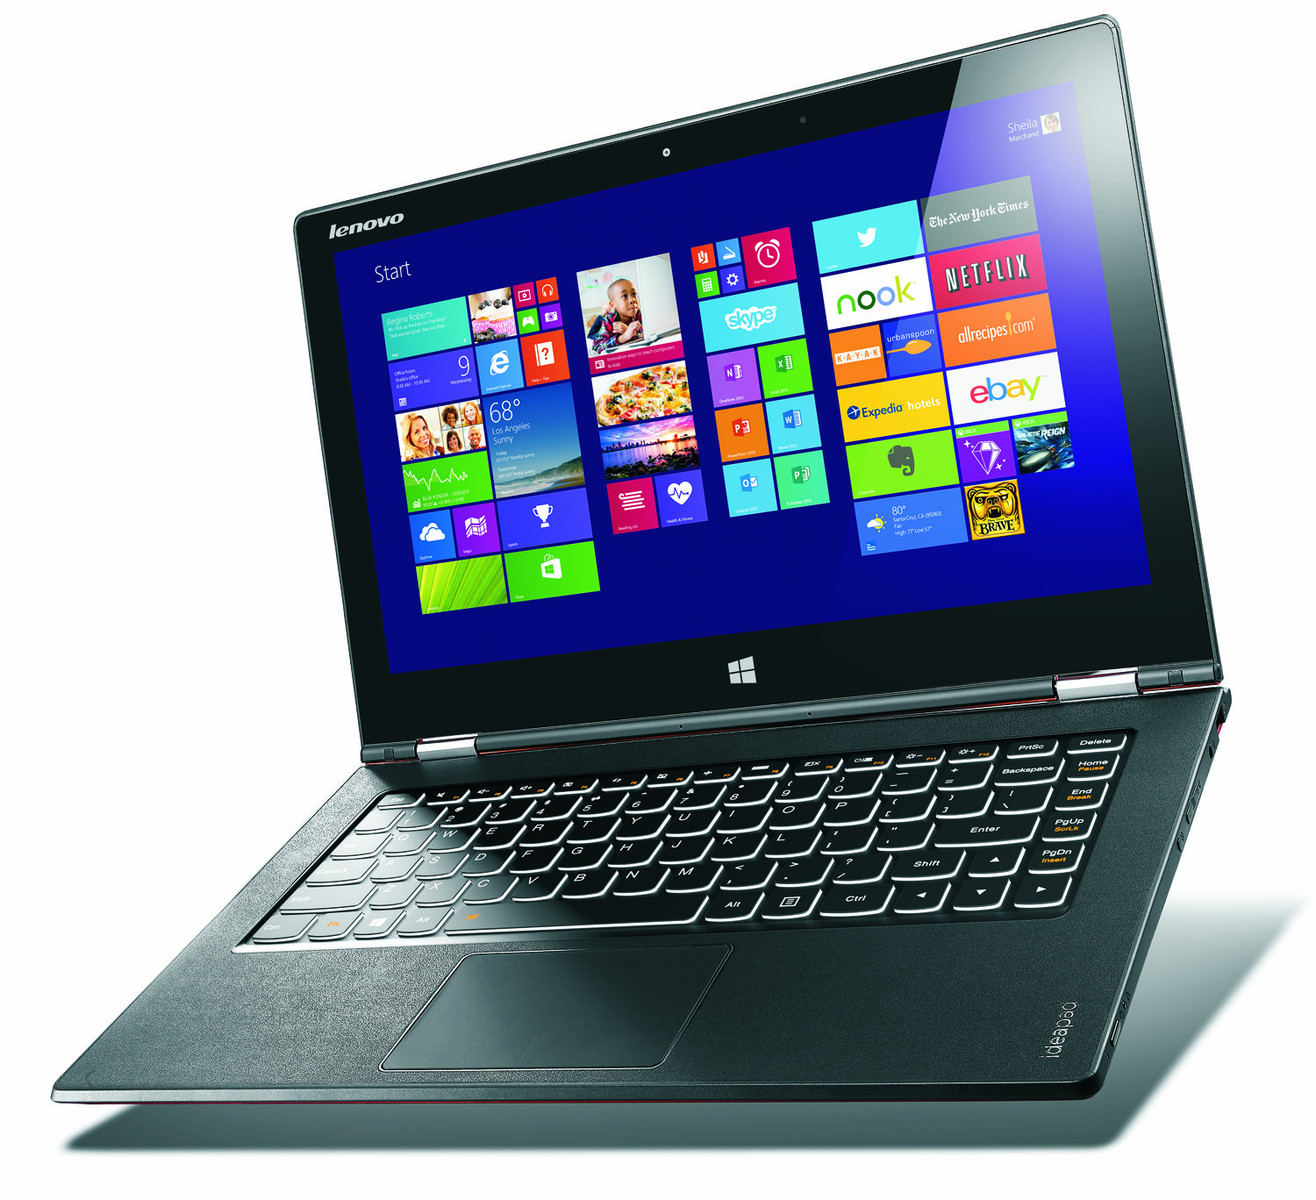 Lenovo Yoga 2 Pro Touchpad Drivers for Windows 10